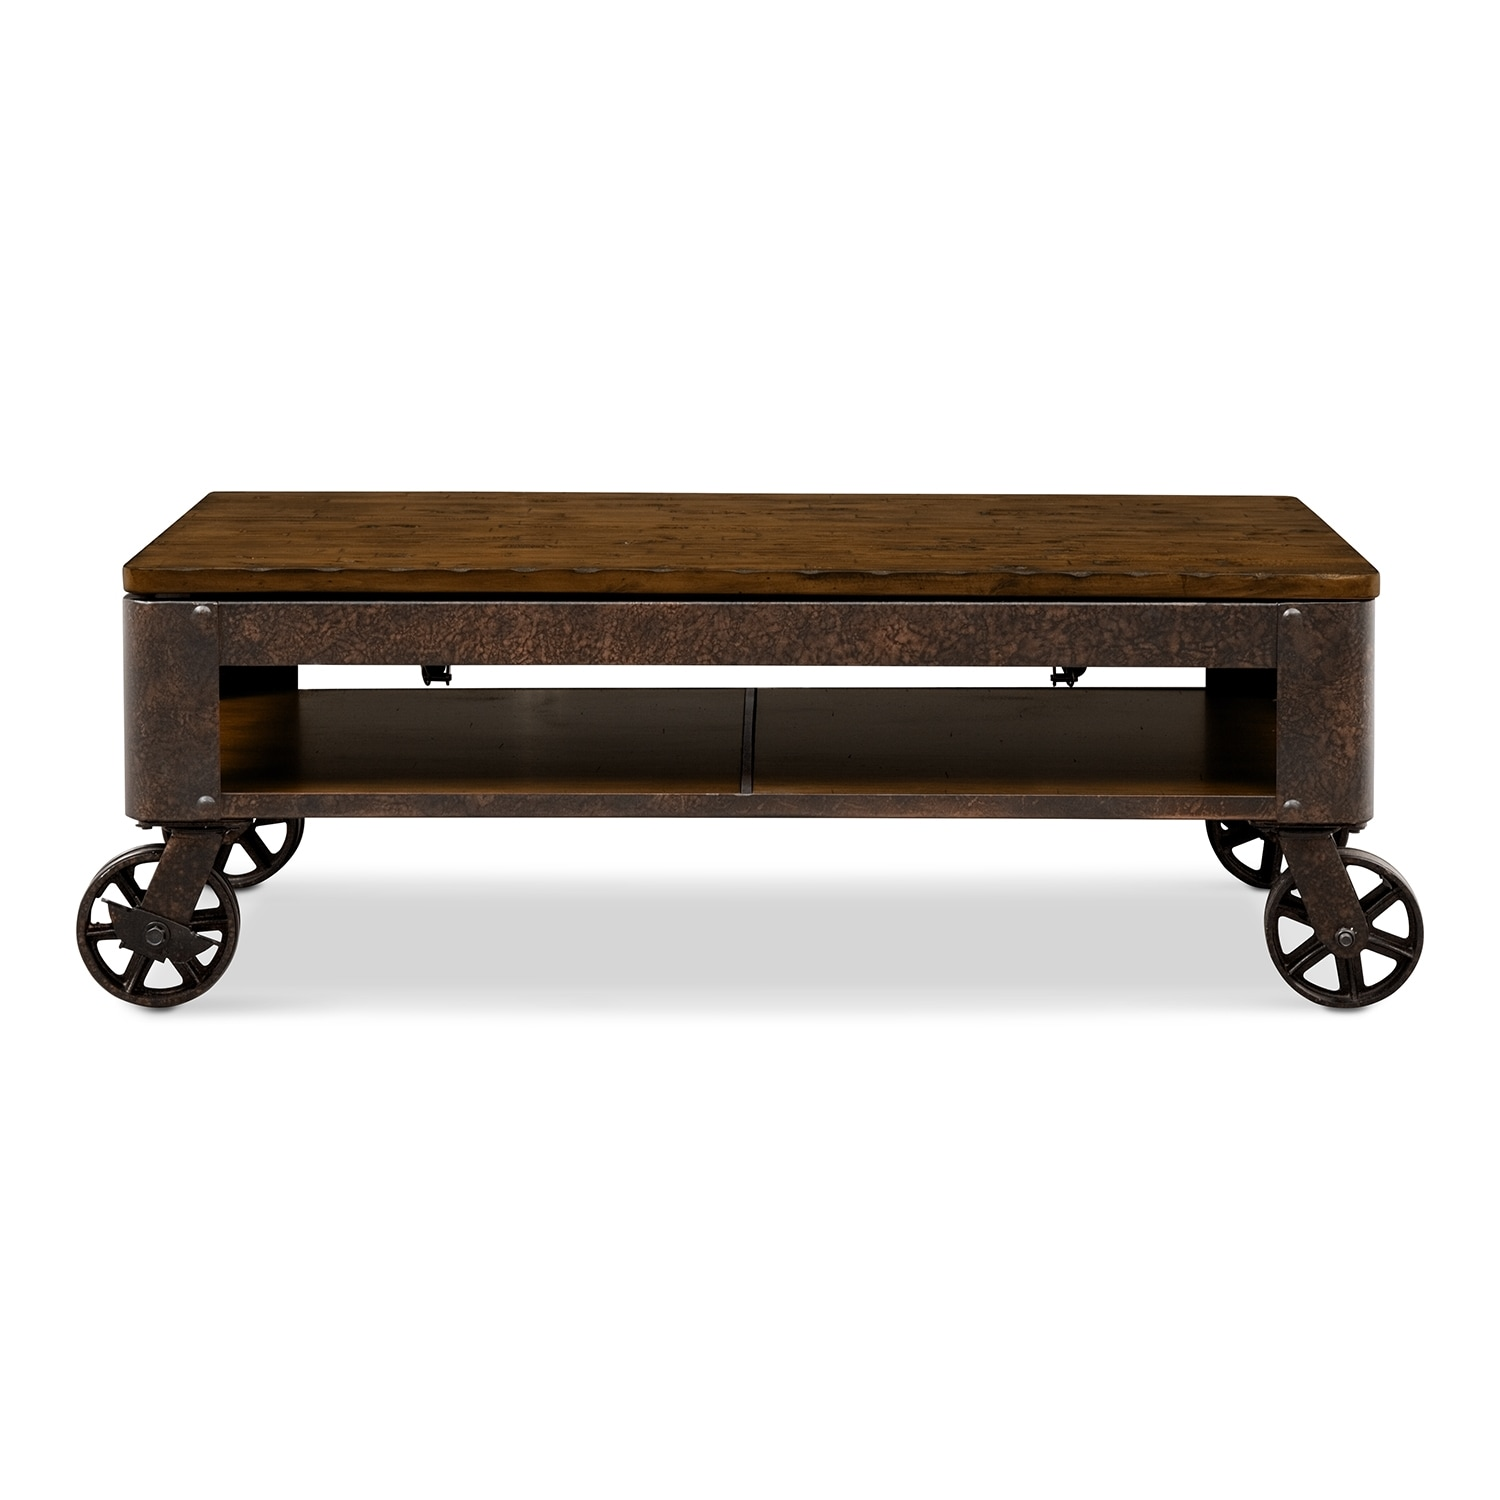 Shortline lift top cocktail table distressed pine Coffee tables with casters